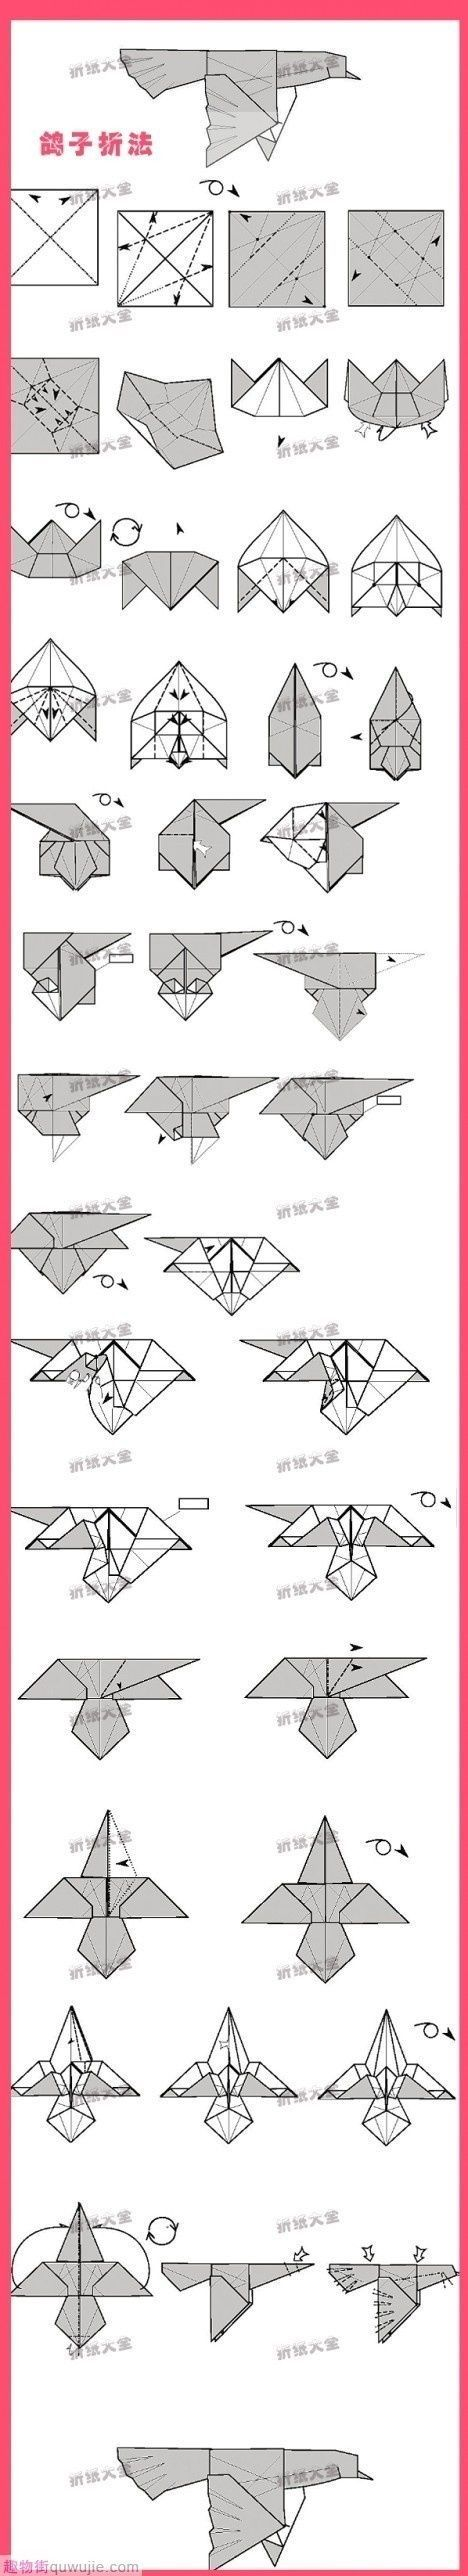 Origami pigeon folding instructions origami instruction on origami pigeon folding instructions origami instruction on imgfave jeuxipadfo Images